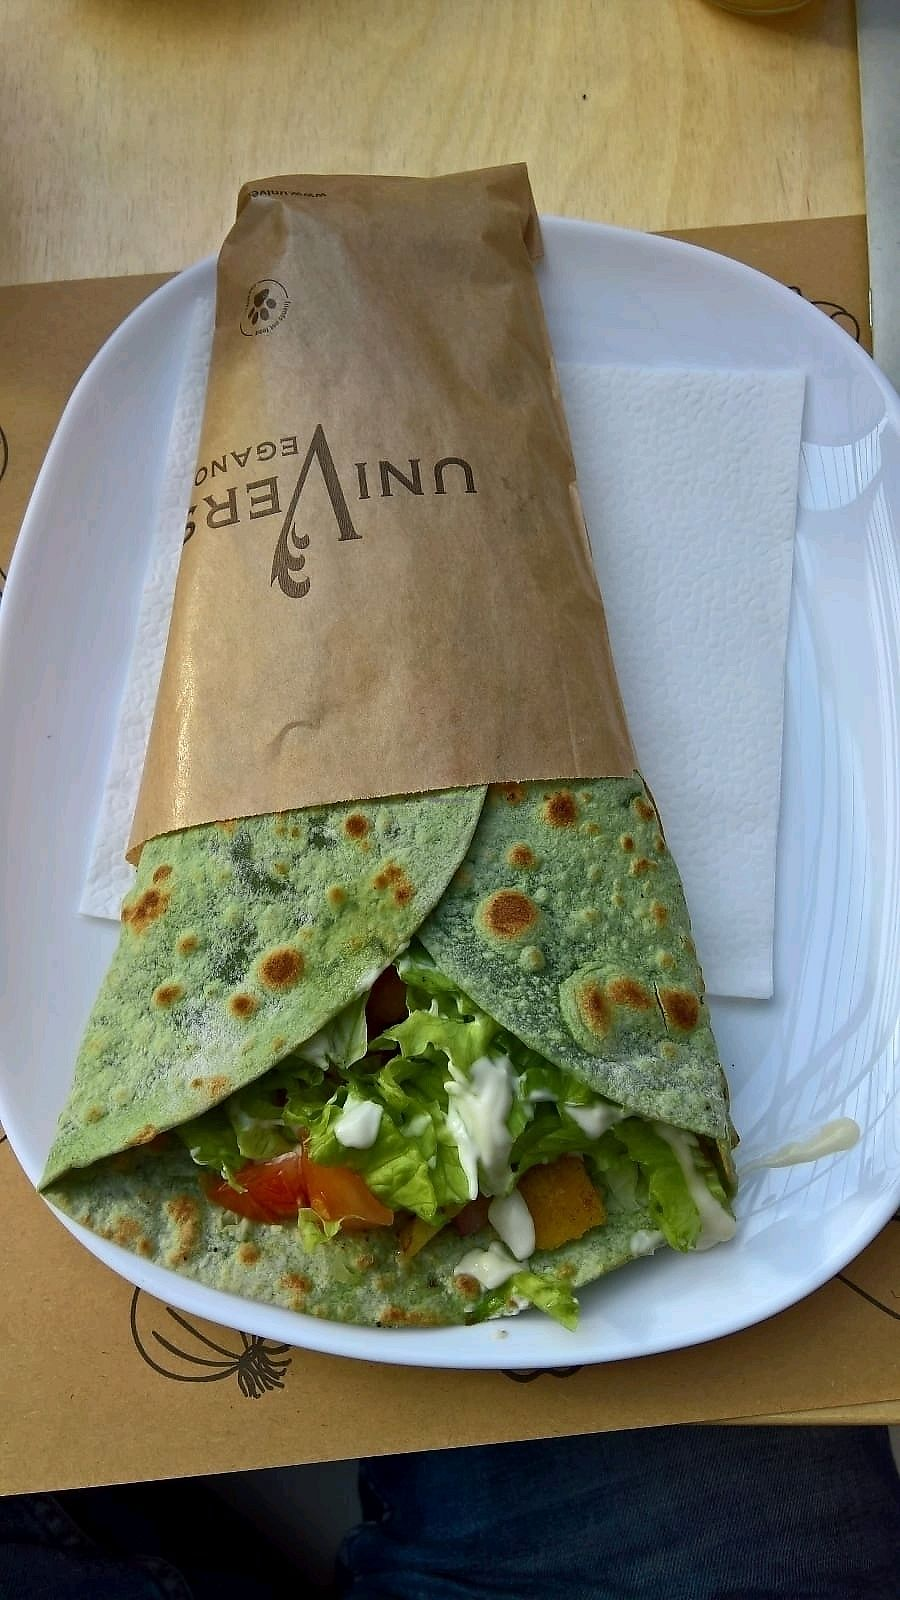 """Photo of Universo Vegano  by <a href=""""/members/profile/mostlyvegan75"""">mostlyvegan75</a> <br/>Lupine wrap <br/> January 4, 2018  - <a href='/contact/abuse/image/41569/342926'>Report</a>"""